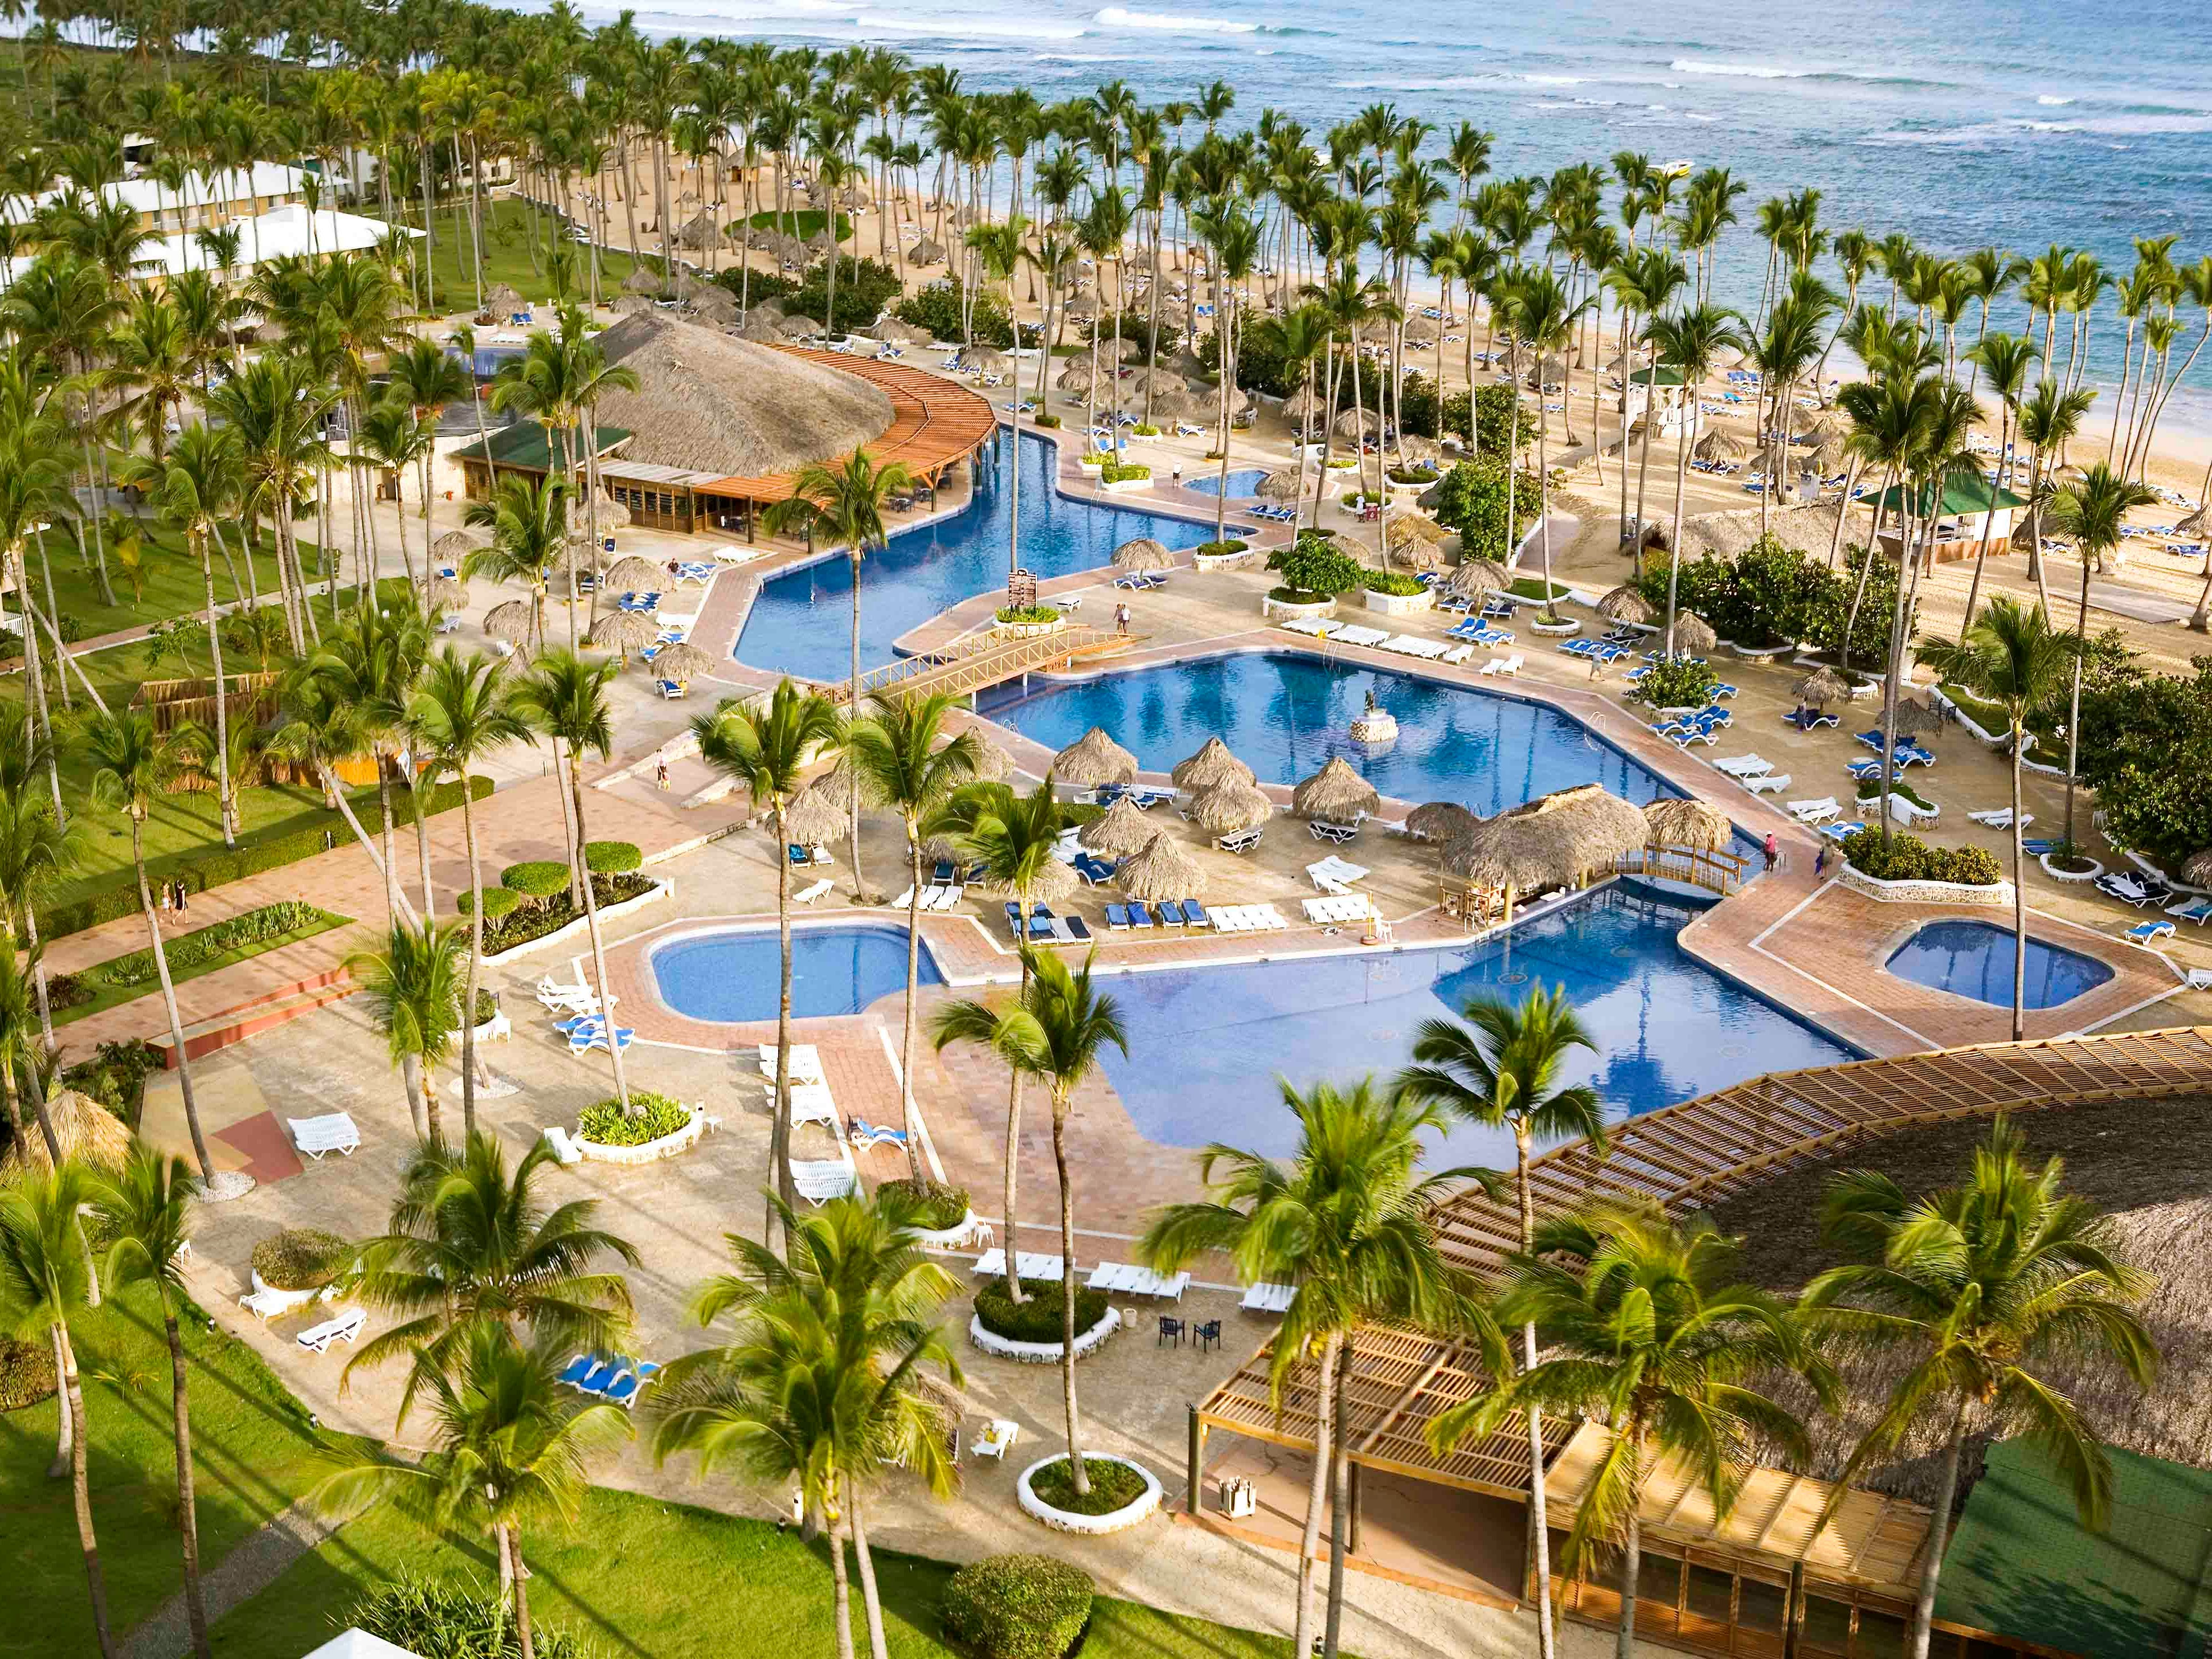 Opening on Dec. 15 after a $30 million makeover, the all-inclusive Grand Sirenis Punta Cana on Uvero Alto Beach in the Dominican Republic has 816 rooms, an enormous Aquagames Waterpark, 10 restaurants ranging from Japanese hibachi to American diner food, 11 bars, a spa and a casino.